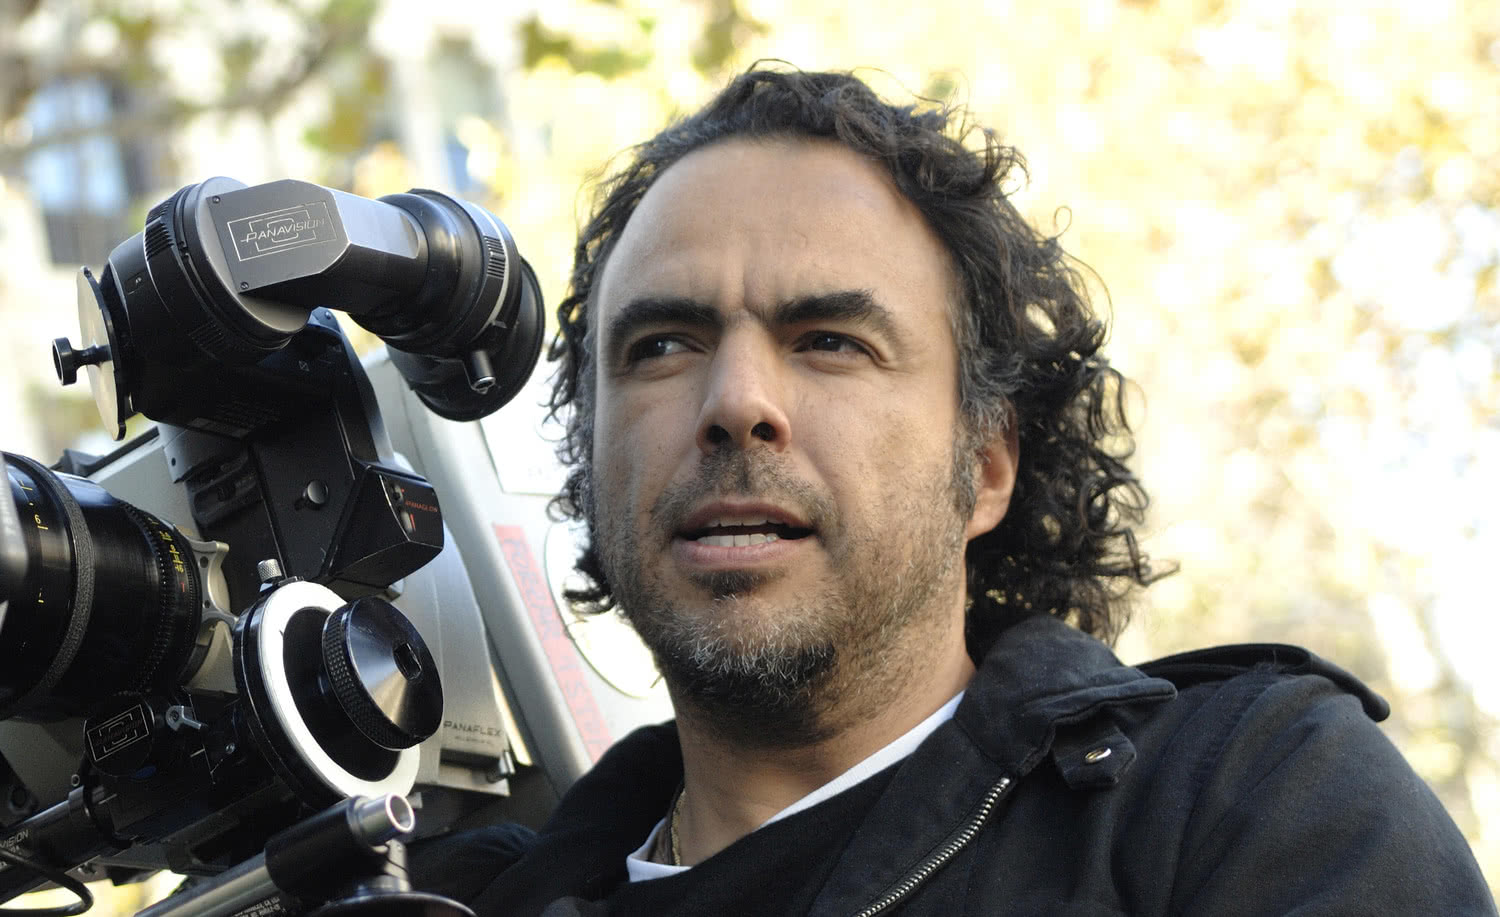 Alejandro González Iñárritu. By Focus Features [CC BY-SA 3.0 (http://creativecommons.org/licenses/by-sa/3.0 )], via Wikimedia Commons.